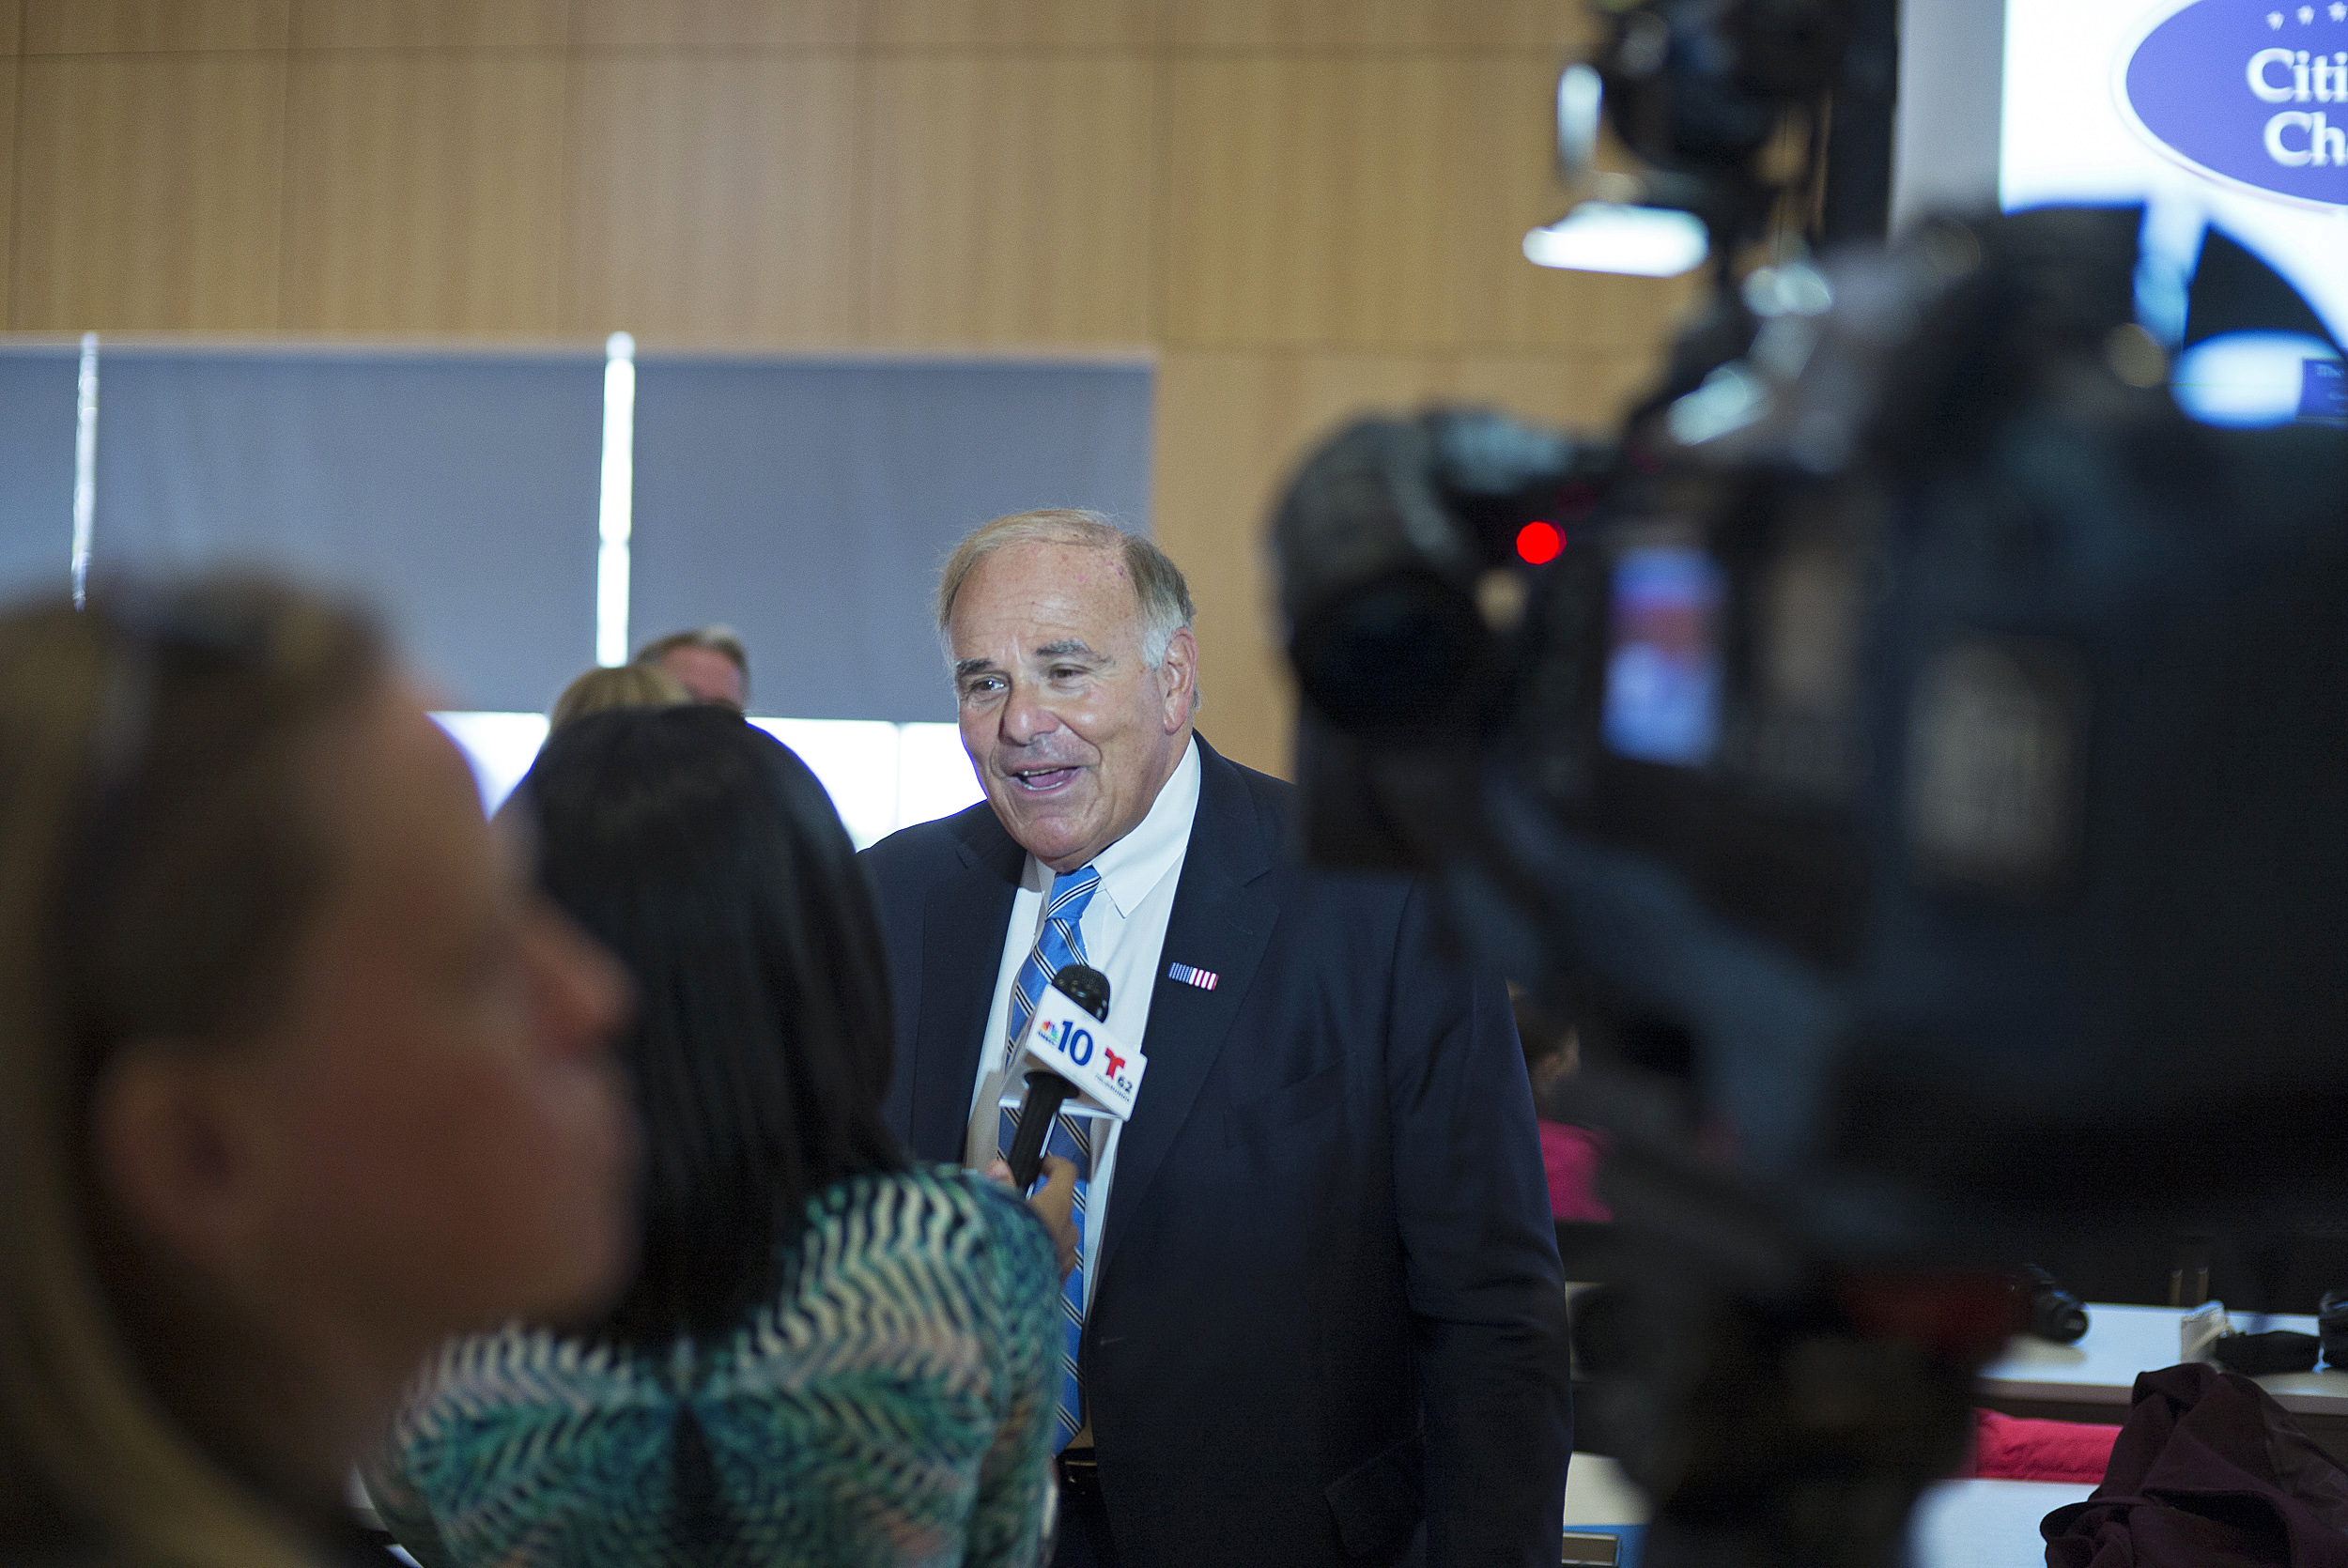 Former Gov. Ed Rendell speaks with a reporter from NBC 10 Philadelphia.